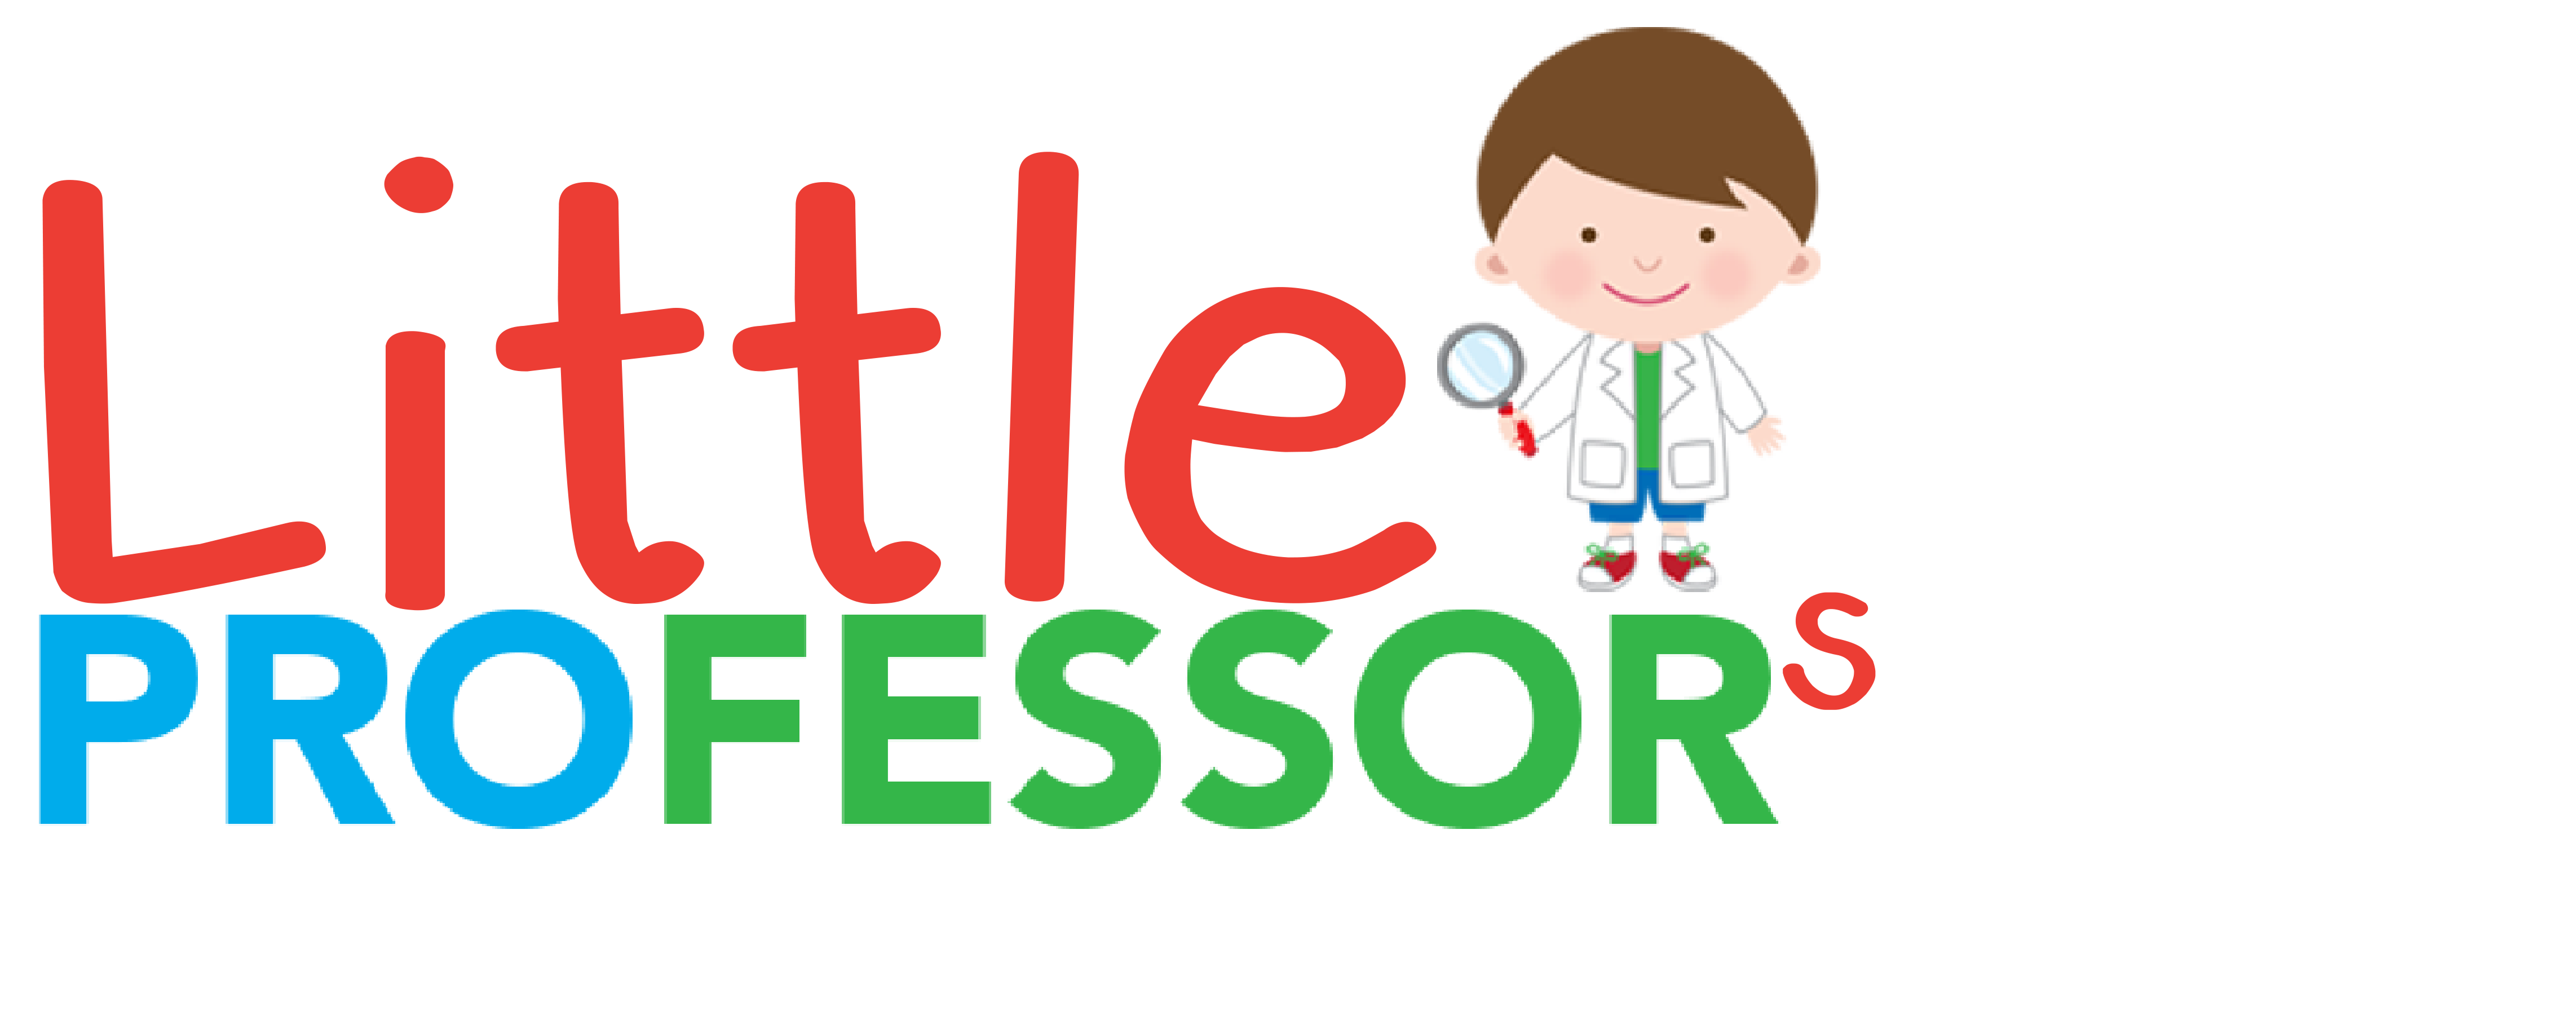 Professor clipart old professor. Camp little professors about